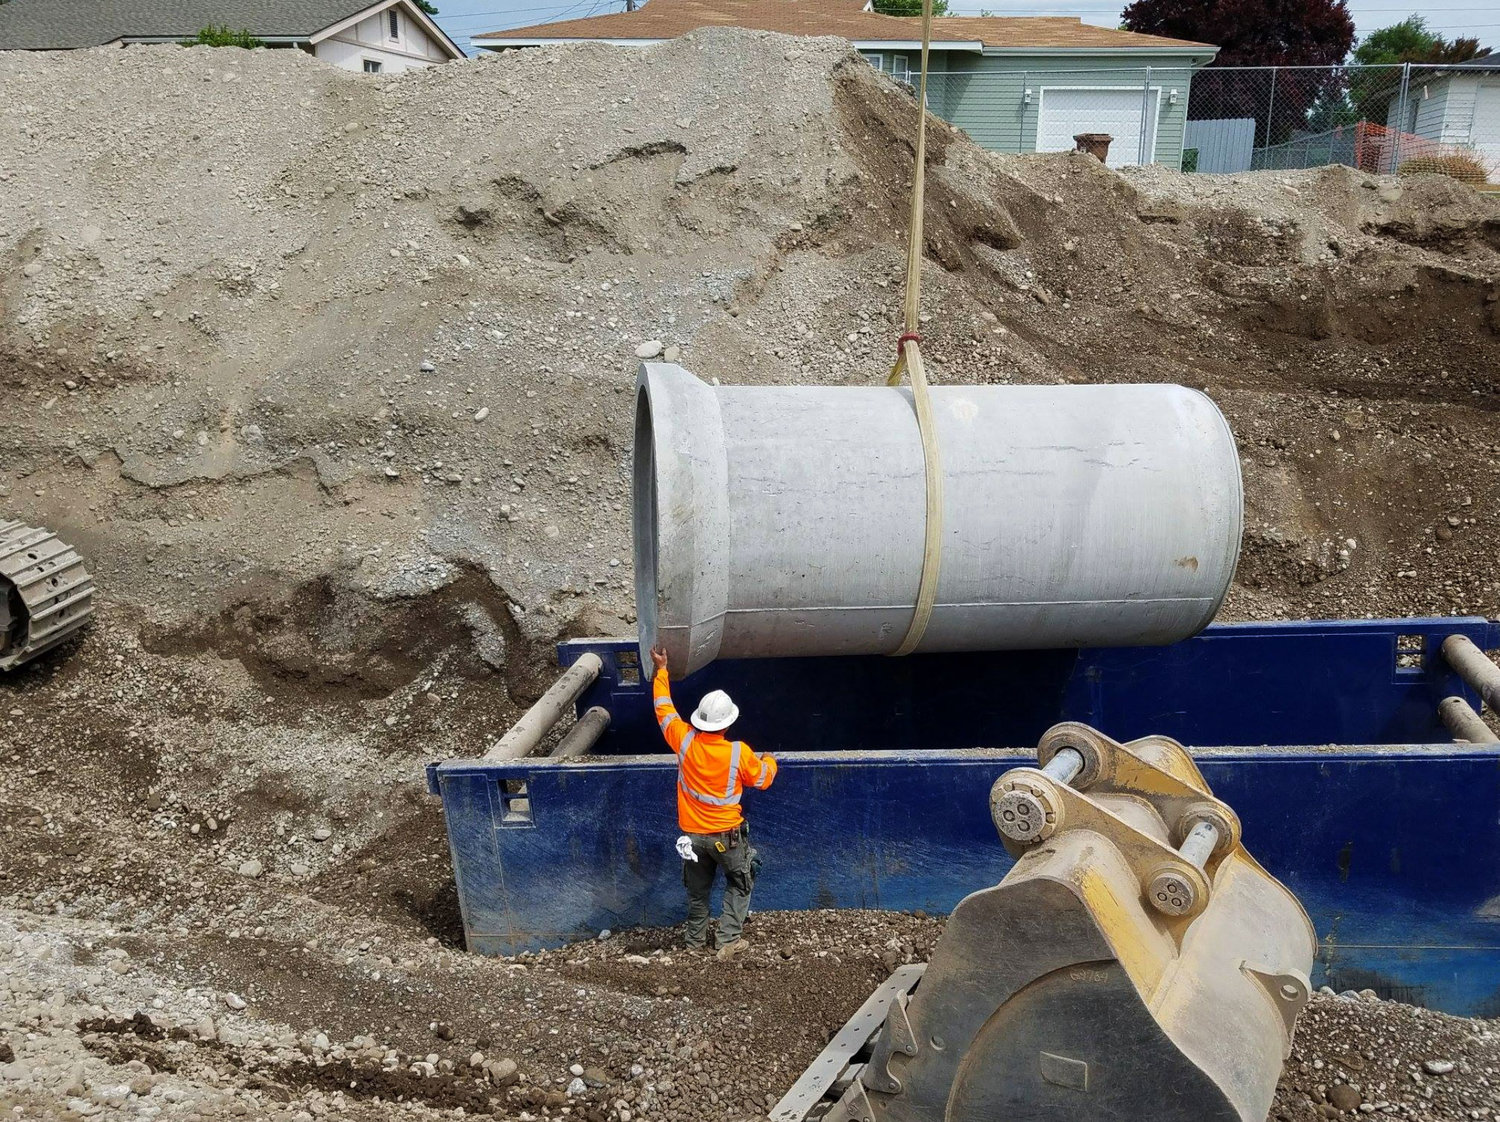 Best Outlet for Precast Concrete Products in Australia